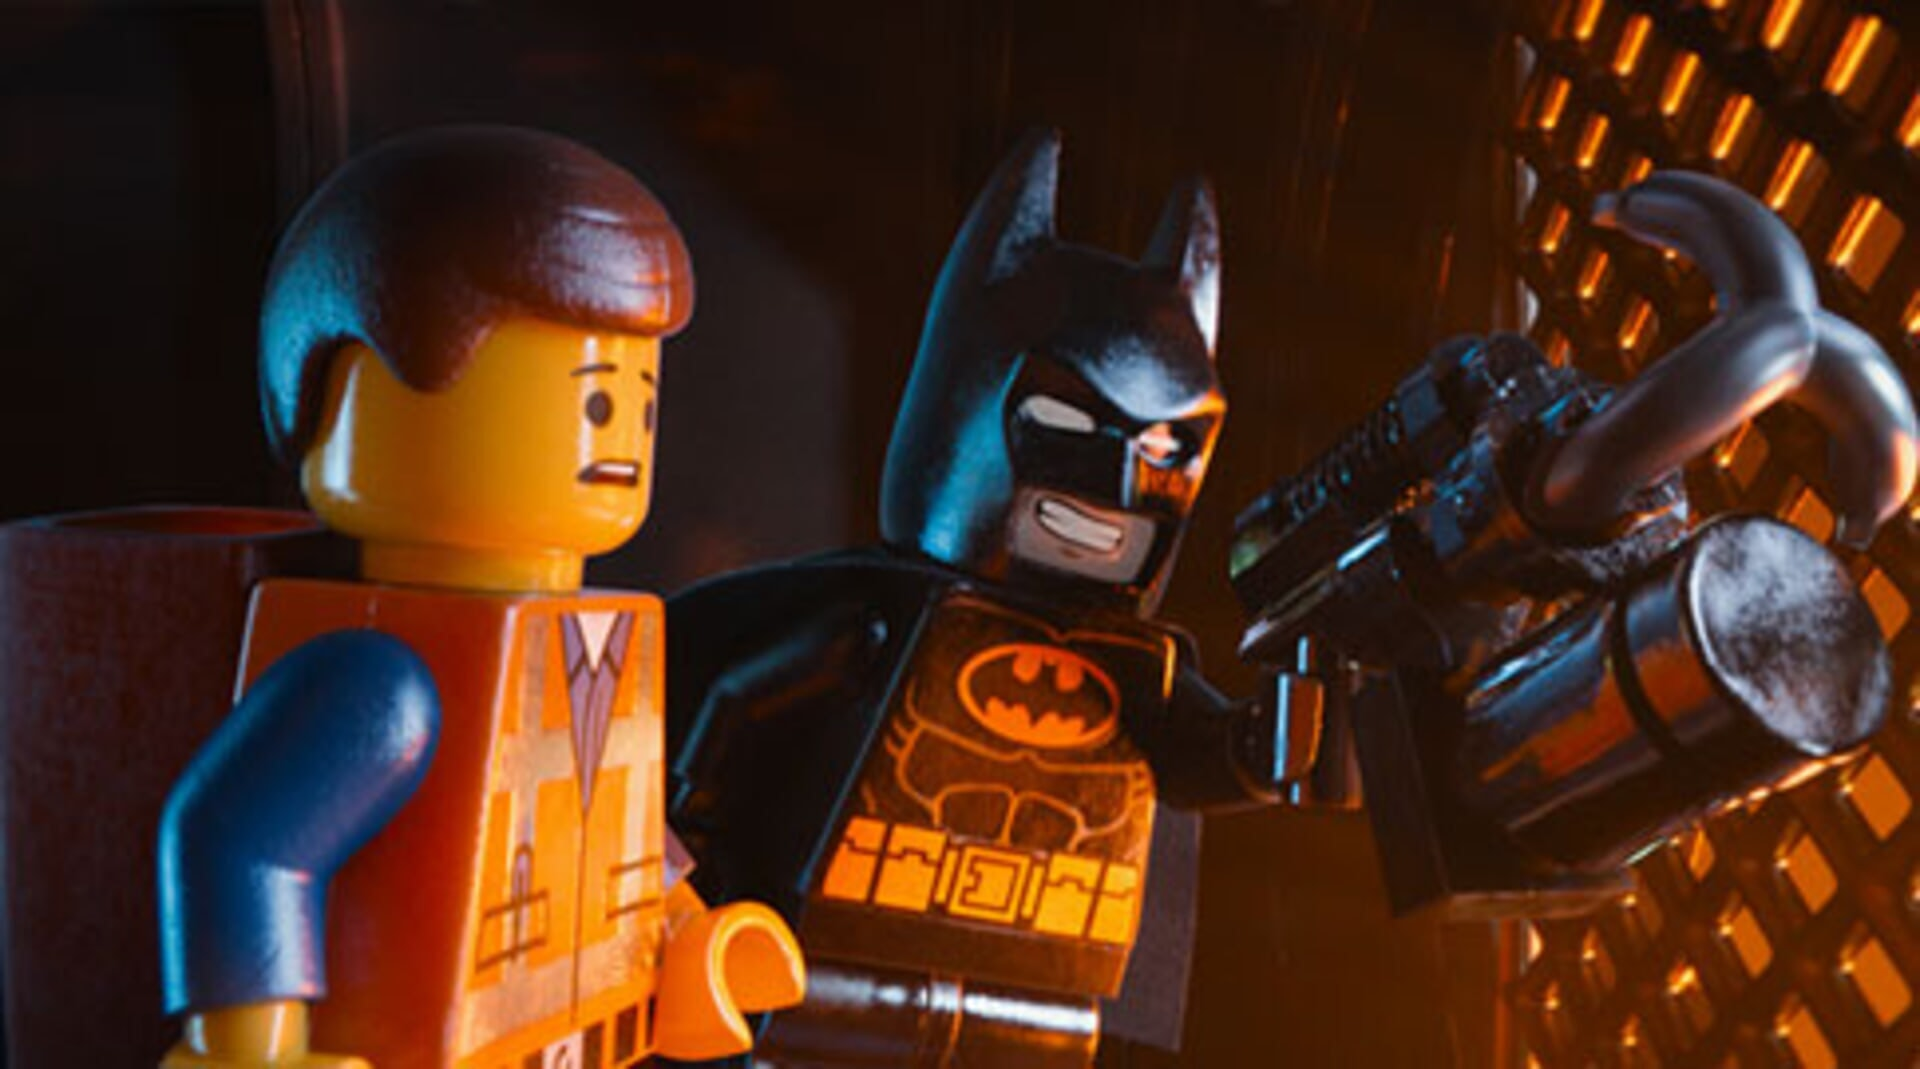 The Lego Movie - Image 28